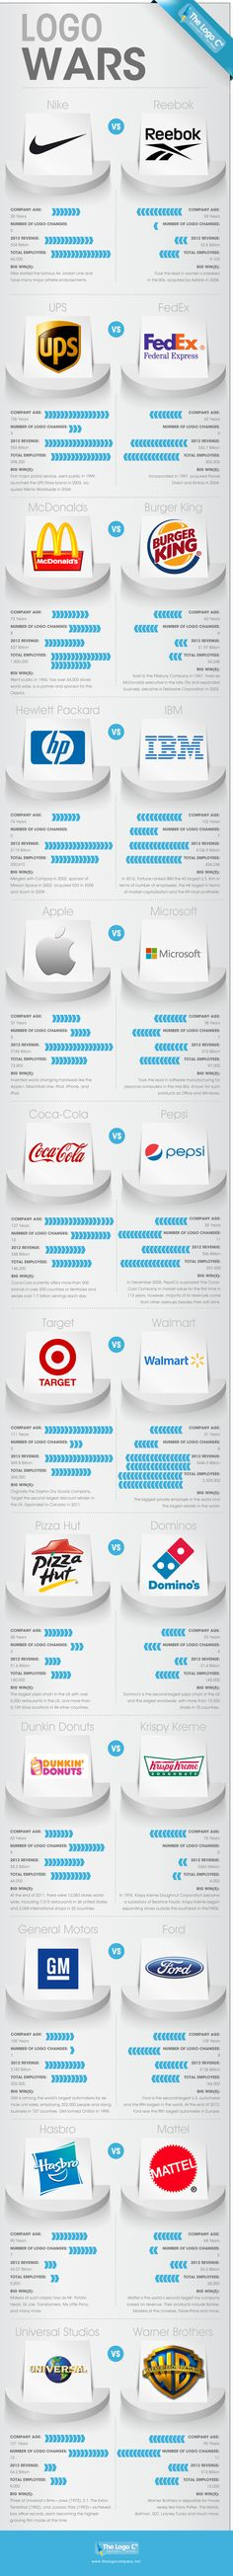 Logo Wars - infographic